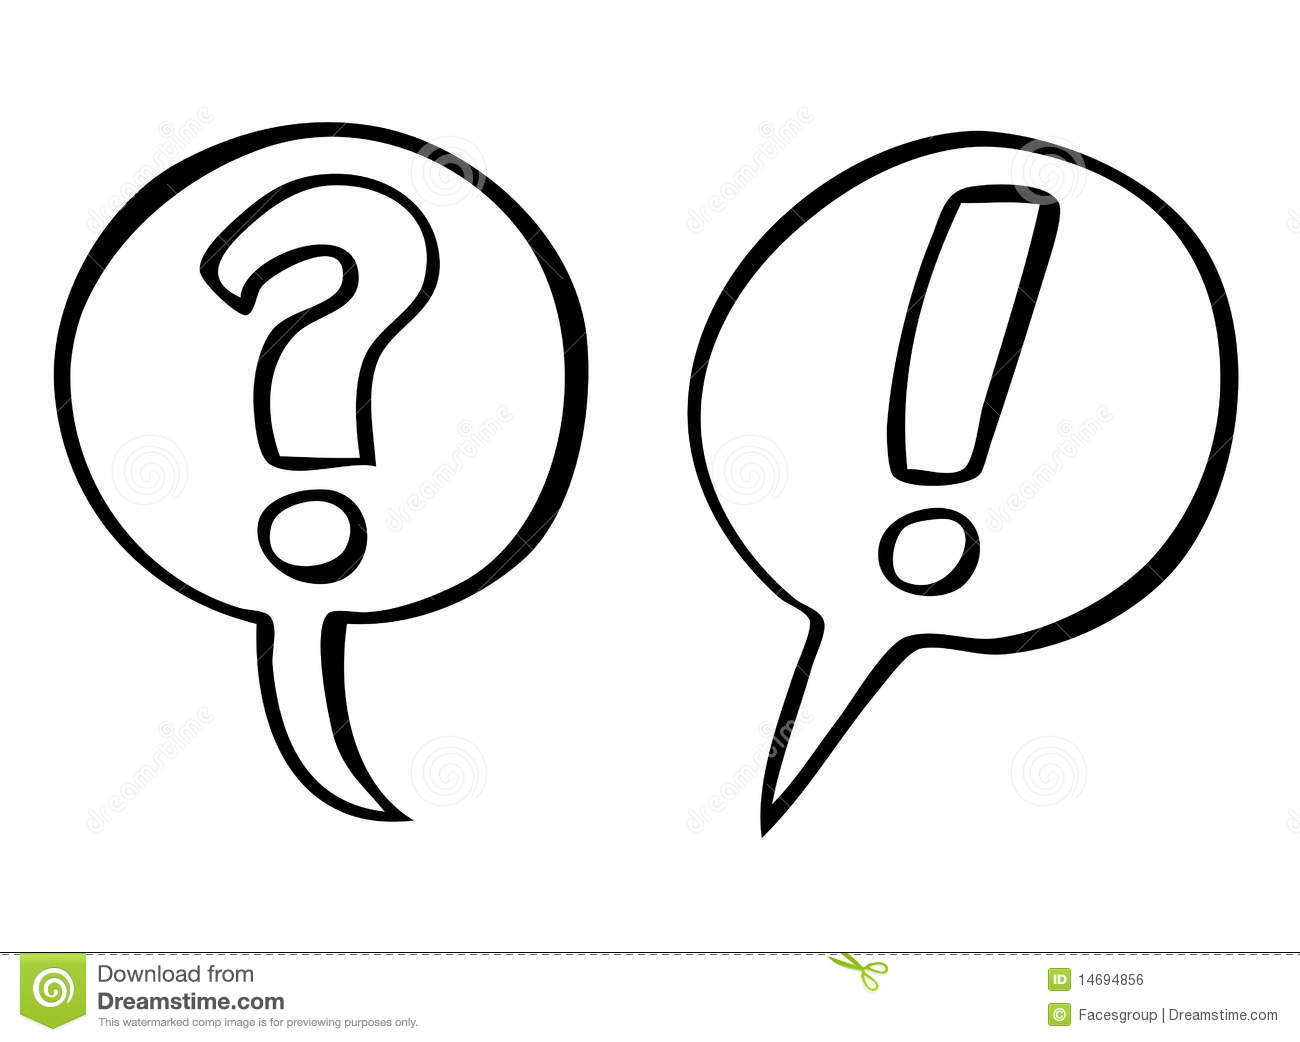 Question And Exclamation Marks Vector Royalty Free Stock Image - Image ...